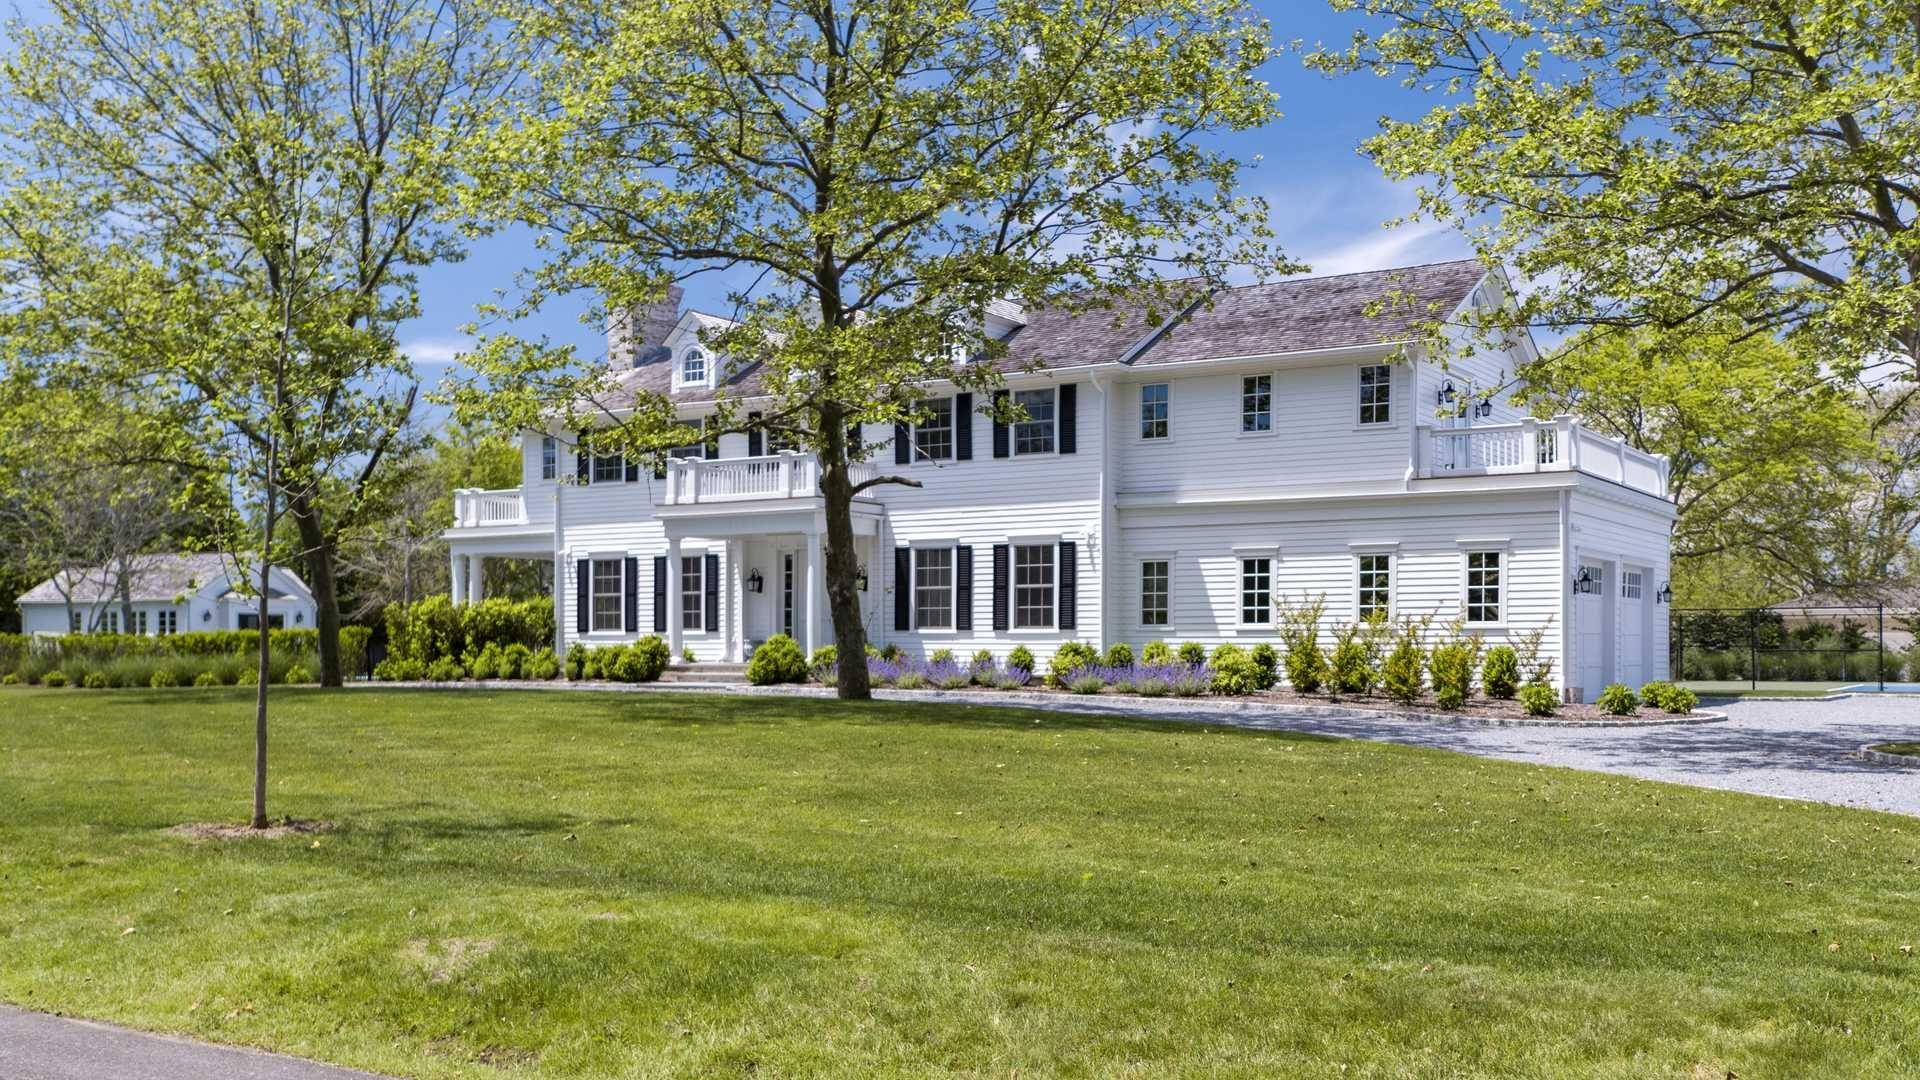 Charming Luxury Home For Sale In 7 Bayfield Land, Hamptons, NY. #LuxuryProperty.com